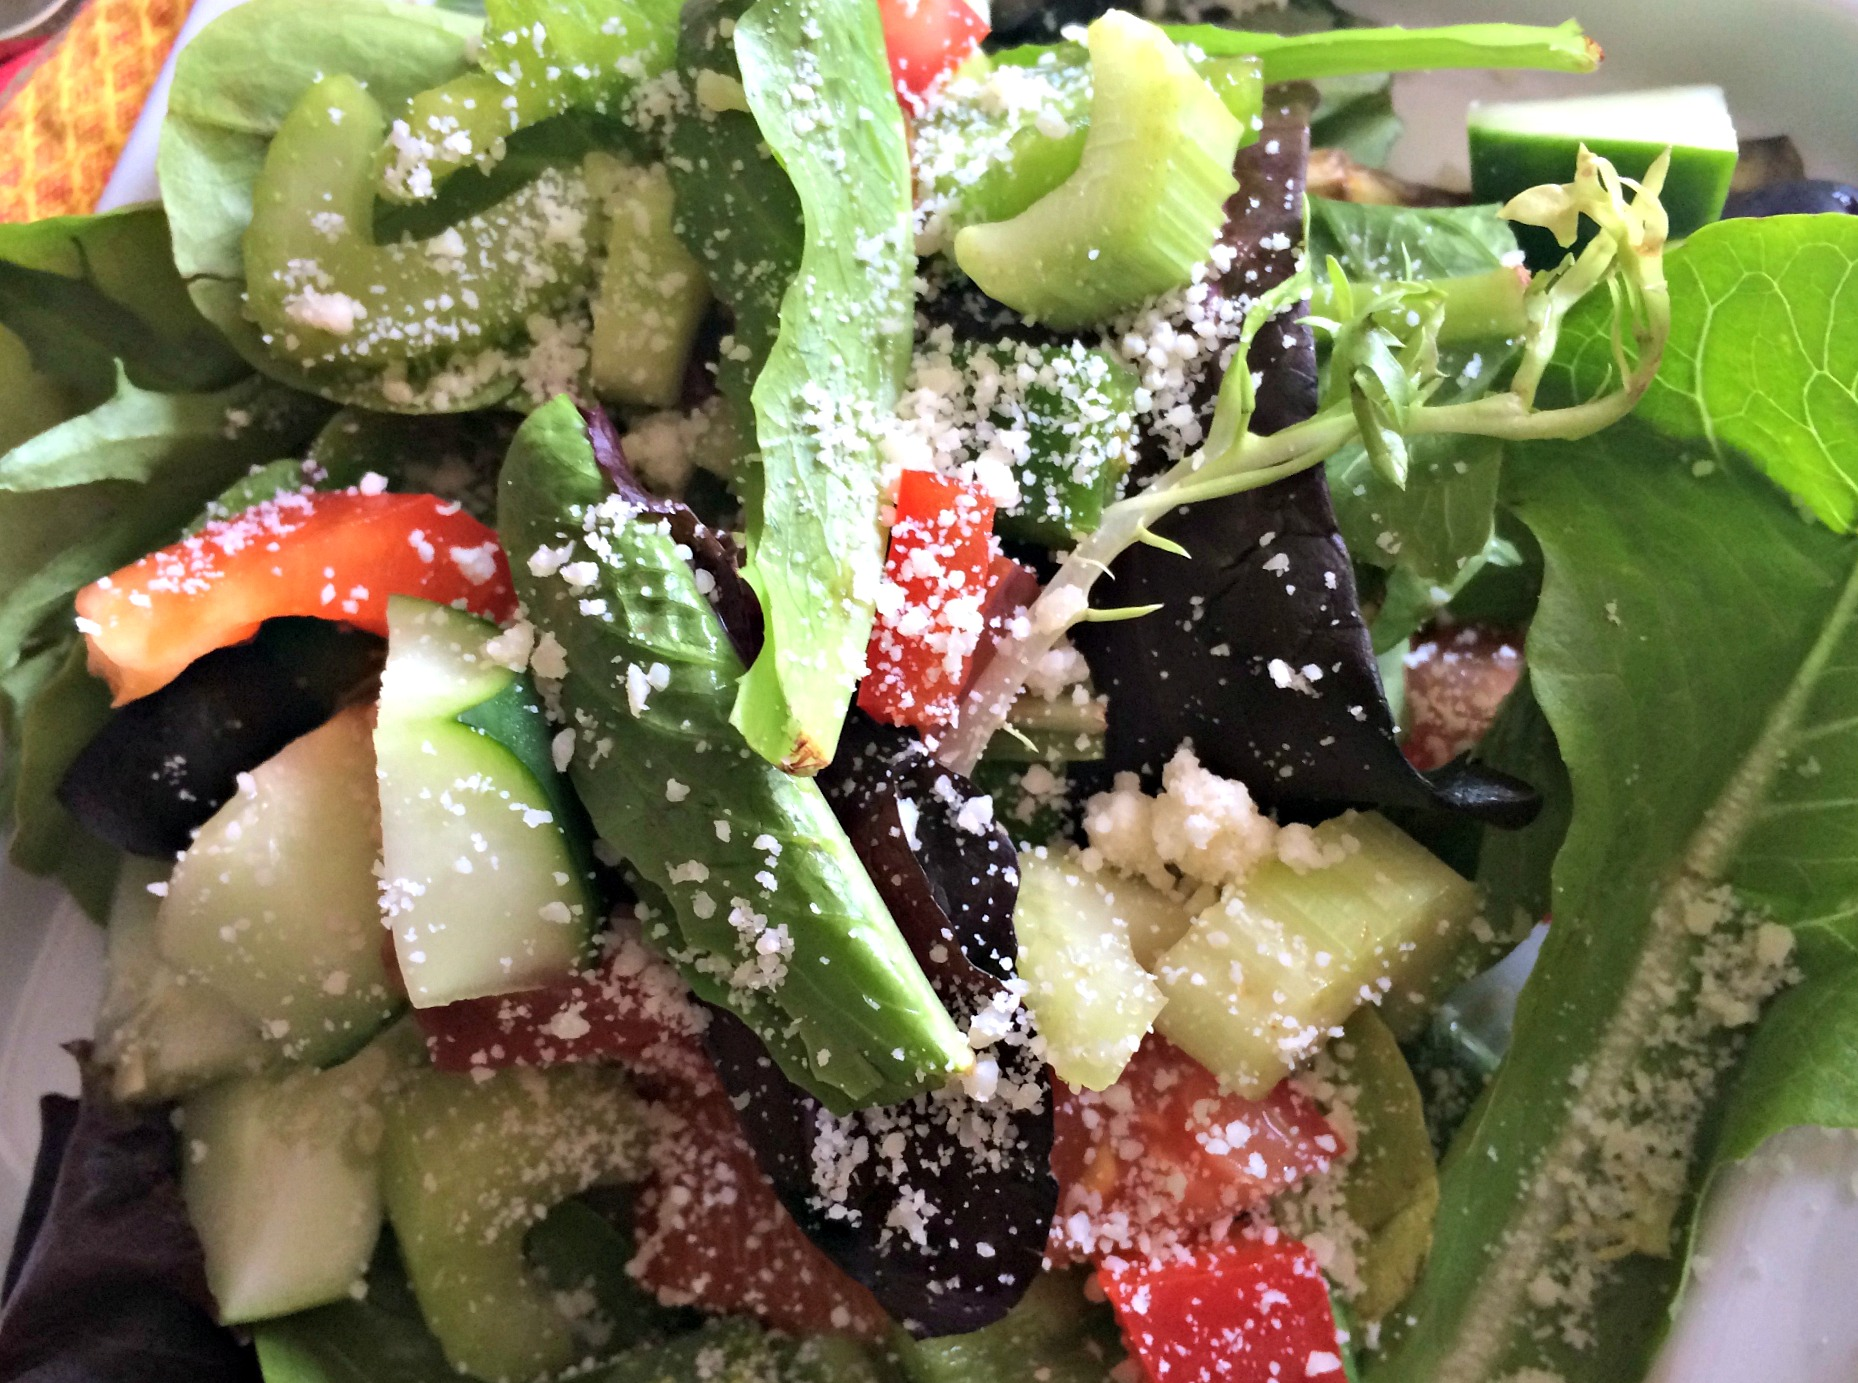 side salad with parmesan cheese and veggies